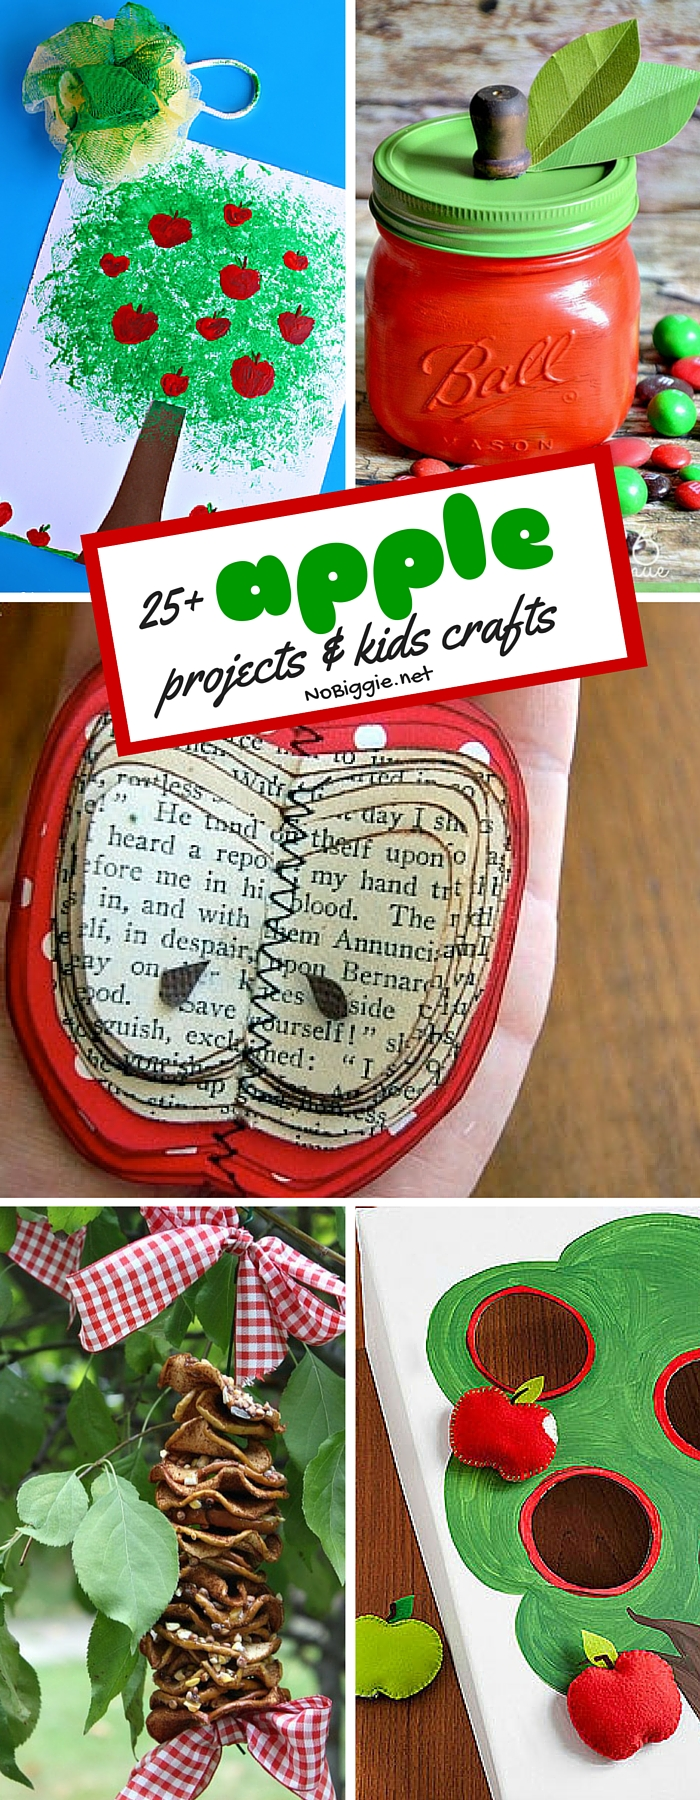 25 apple projects and kids crafts for Arts and crafts workshops near me